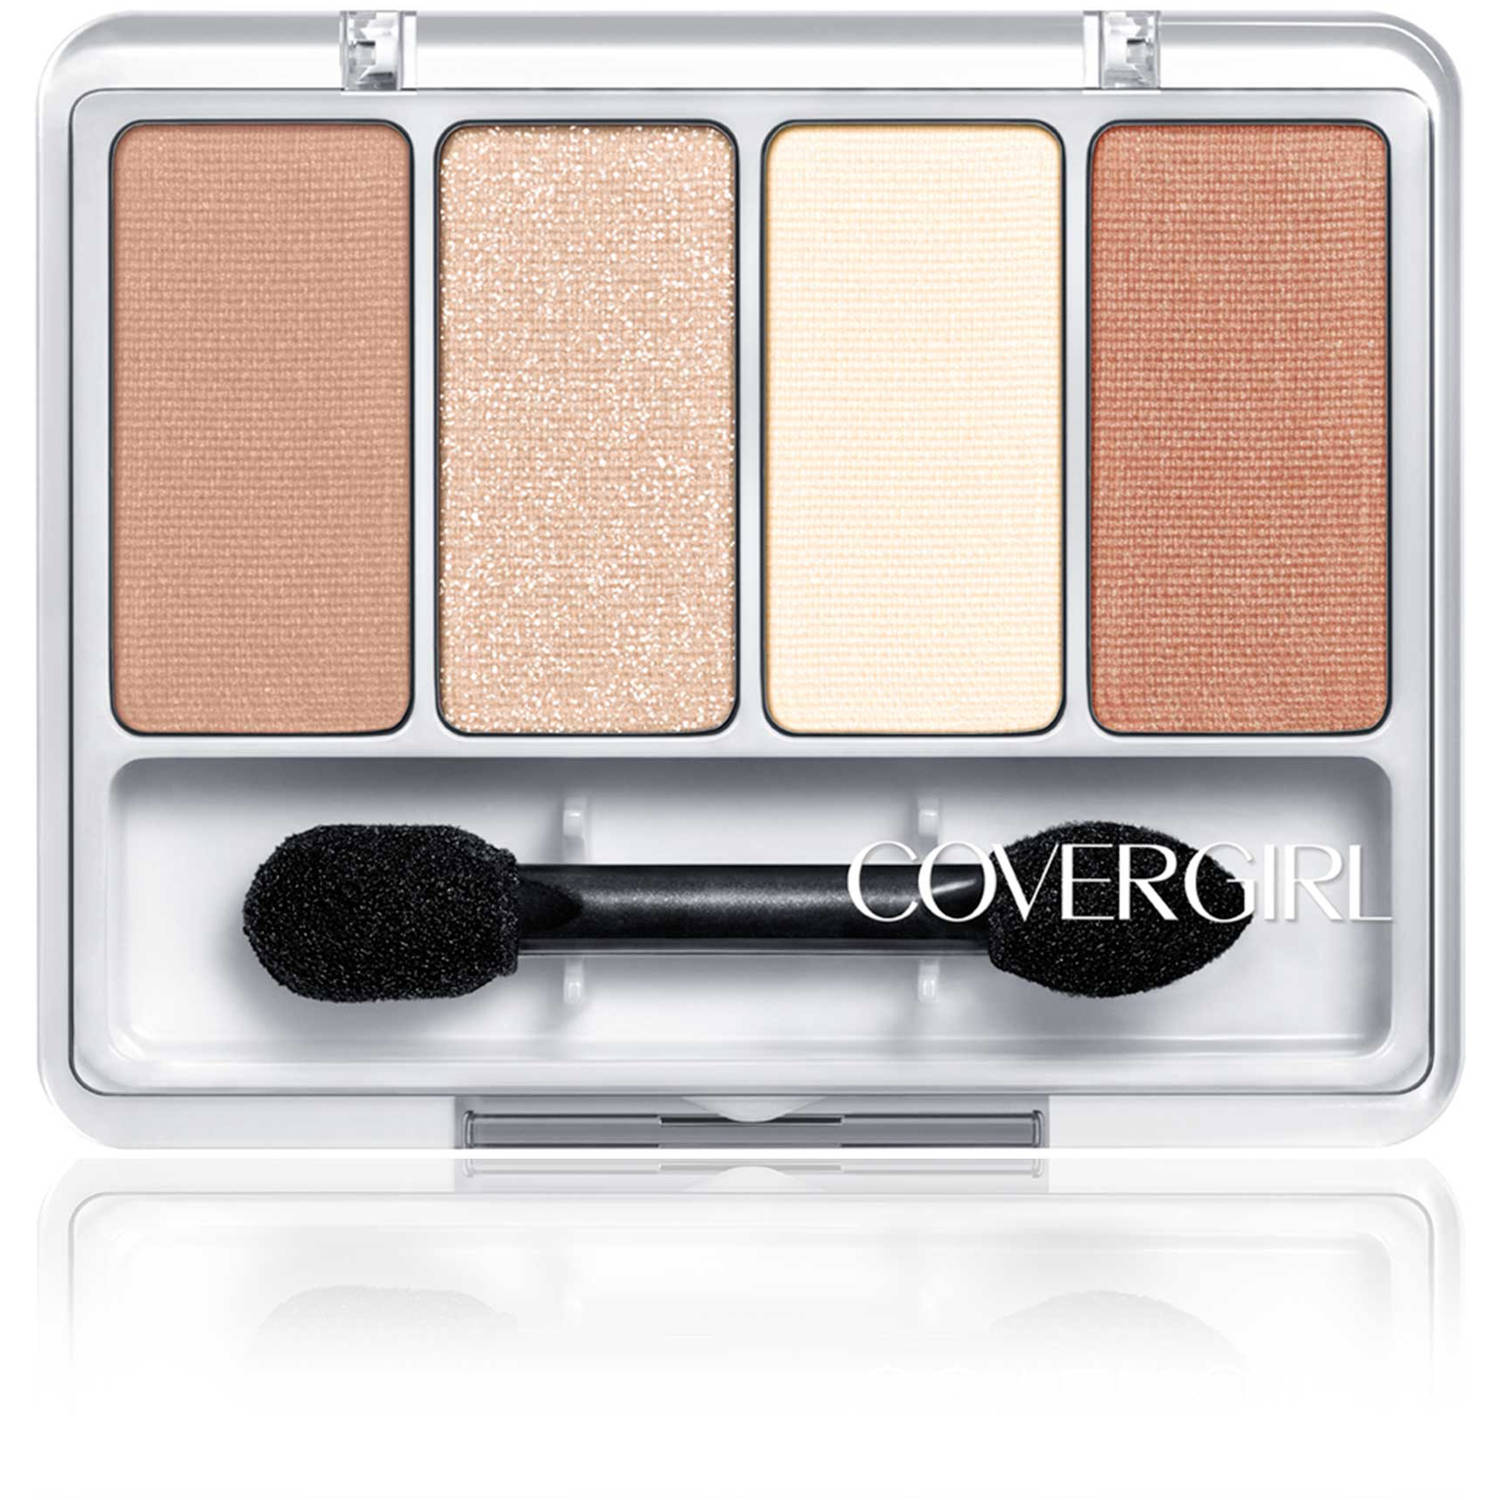 COVERGIRL Eye Enhancers 4-Kit Eye Shadow, Country Woods, .19 oz